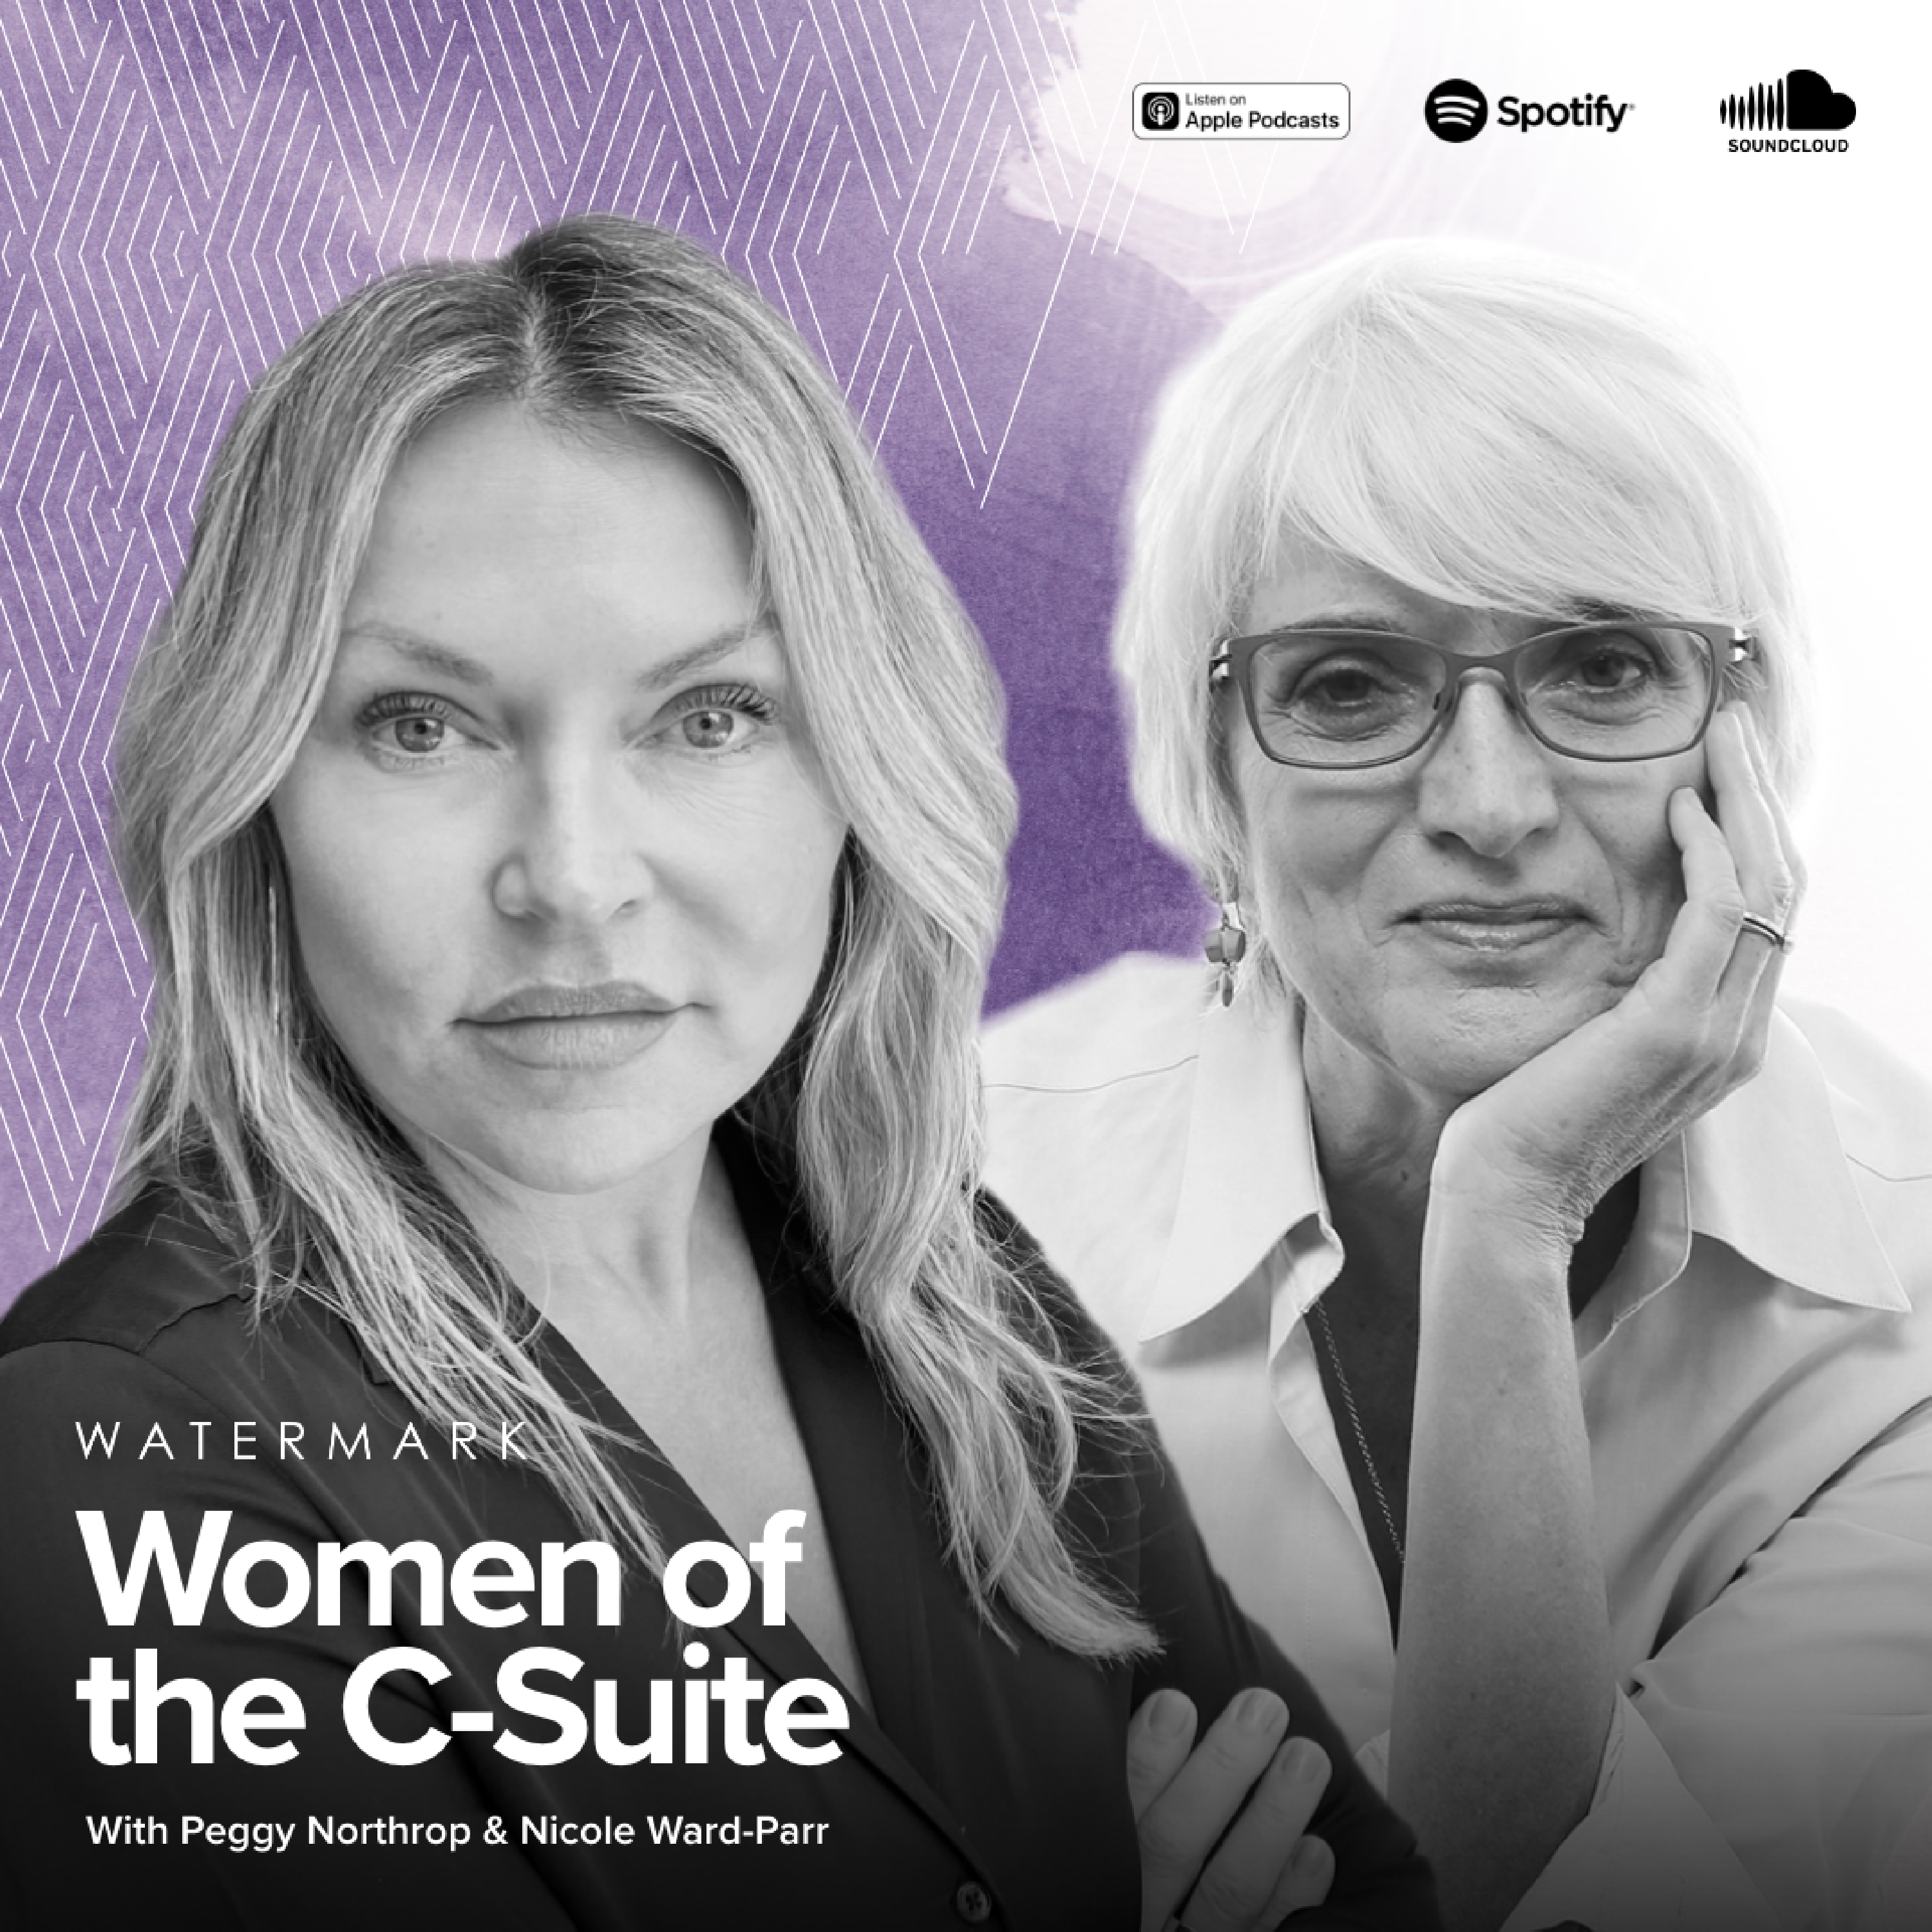 Watermark Women of the C-Suite